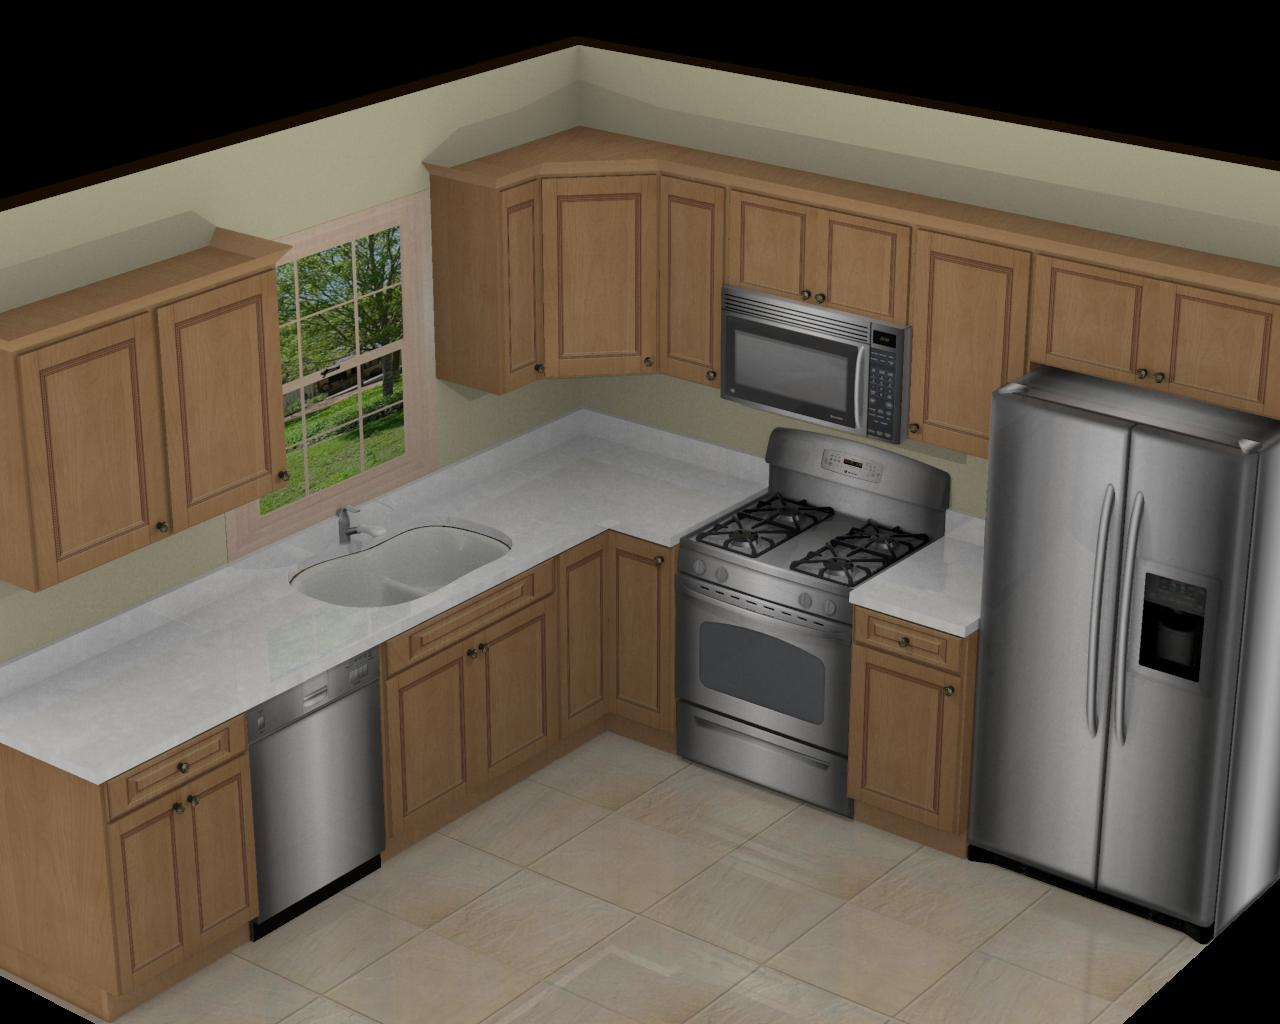 Foundation dezin decor 3d kitchen model design for Kitchen designs pics